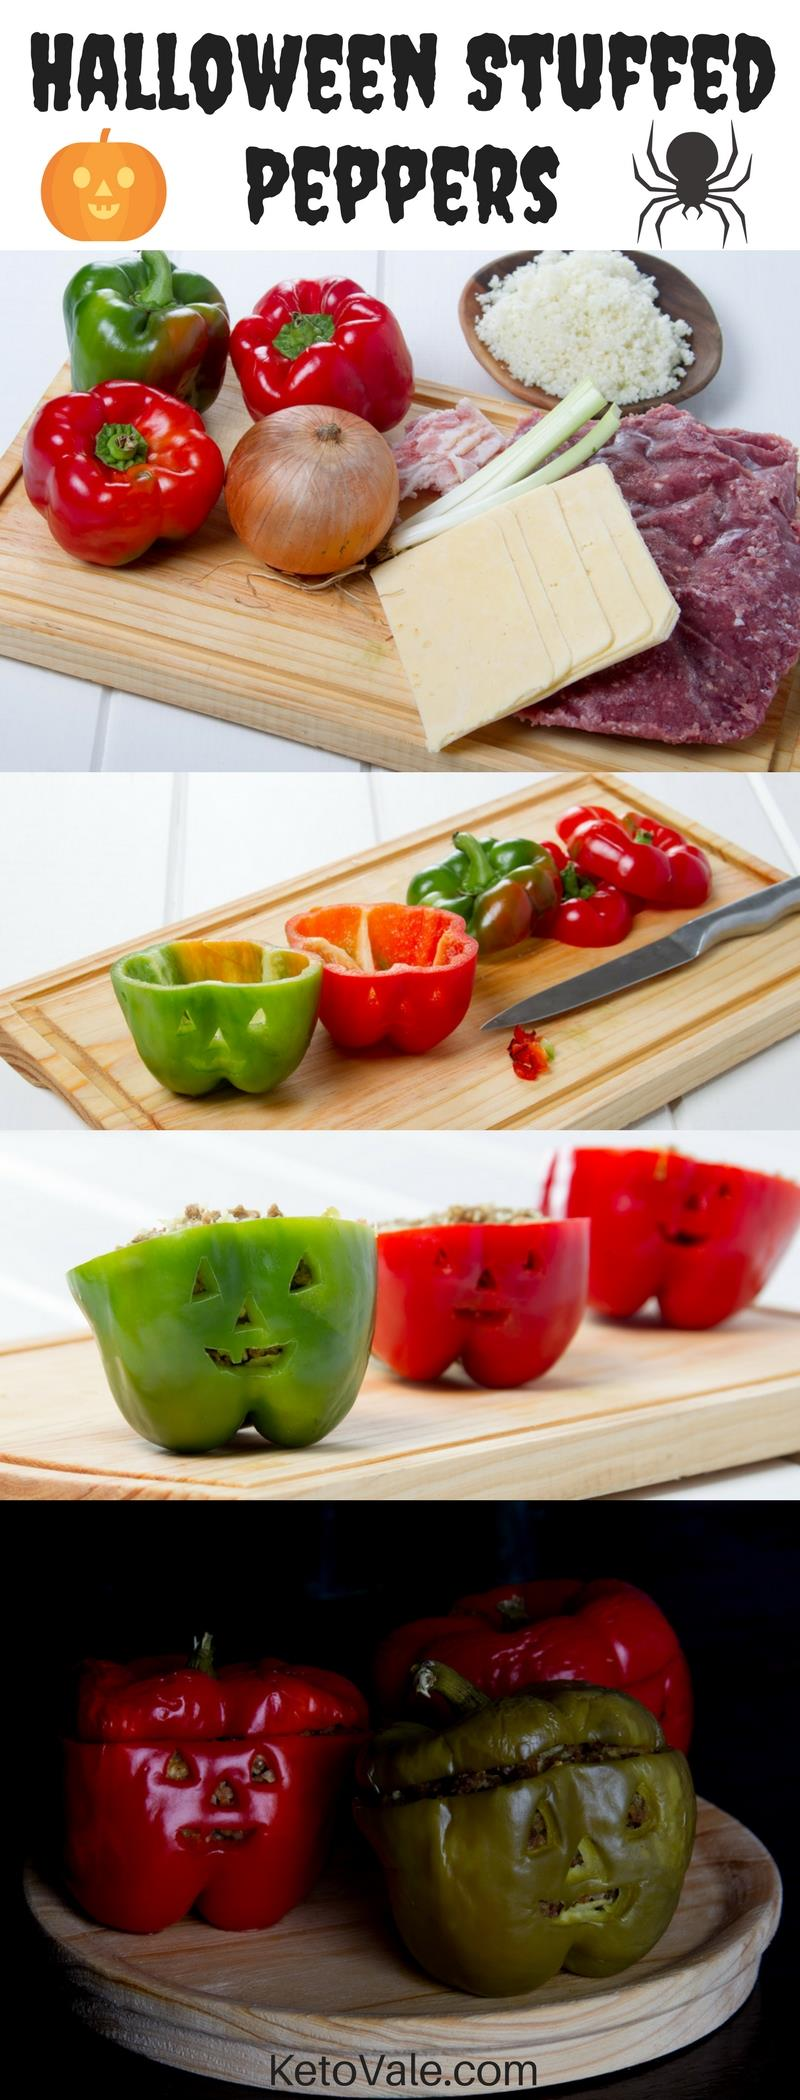 Halloween Stuffed Peppers Recipe